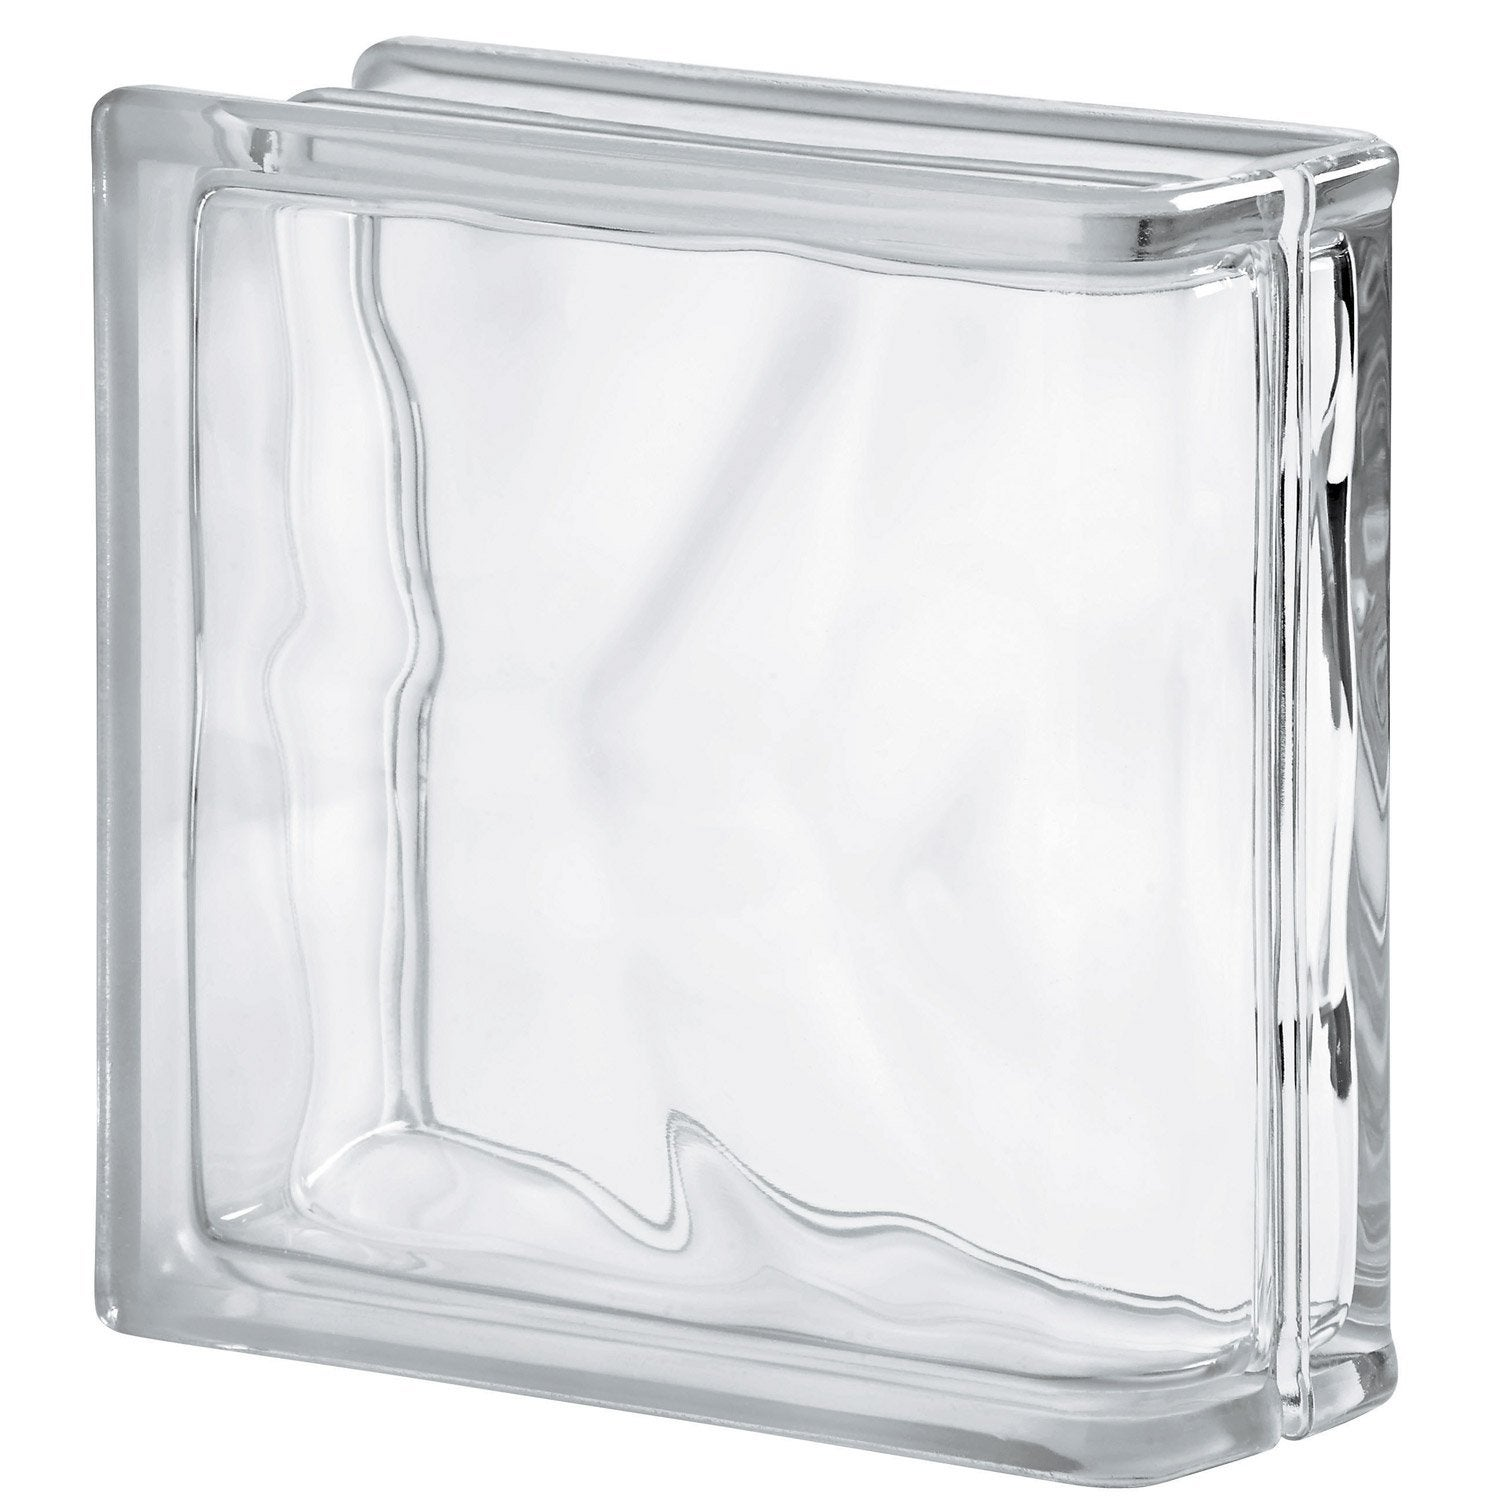 Brique de verre transparent ondul brillant leroy merlin for Mortier pour brique de verre